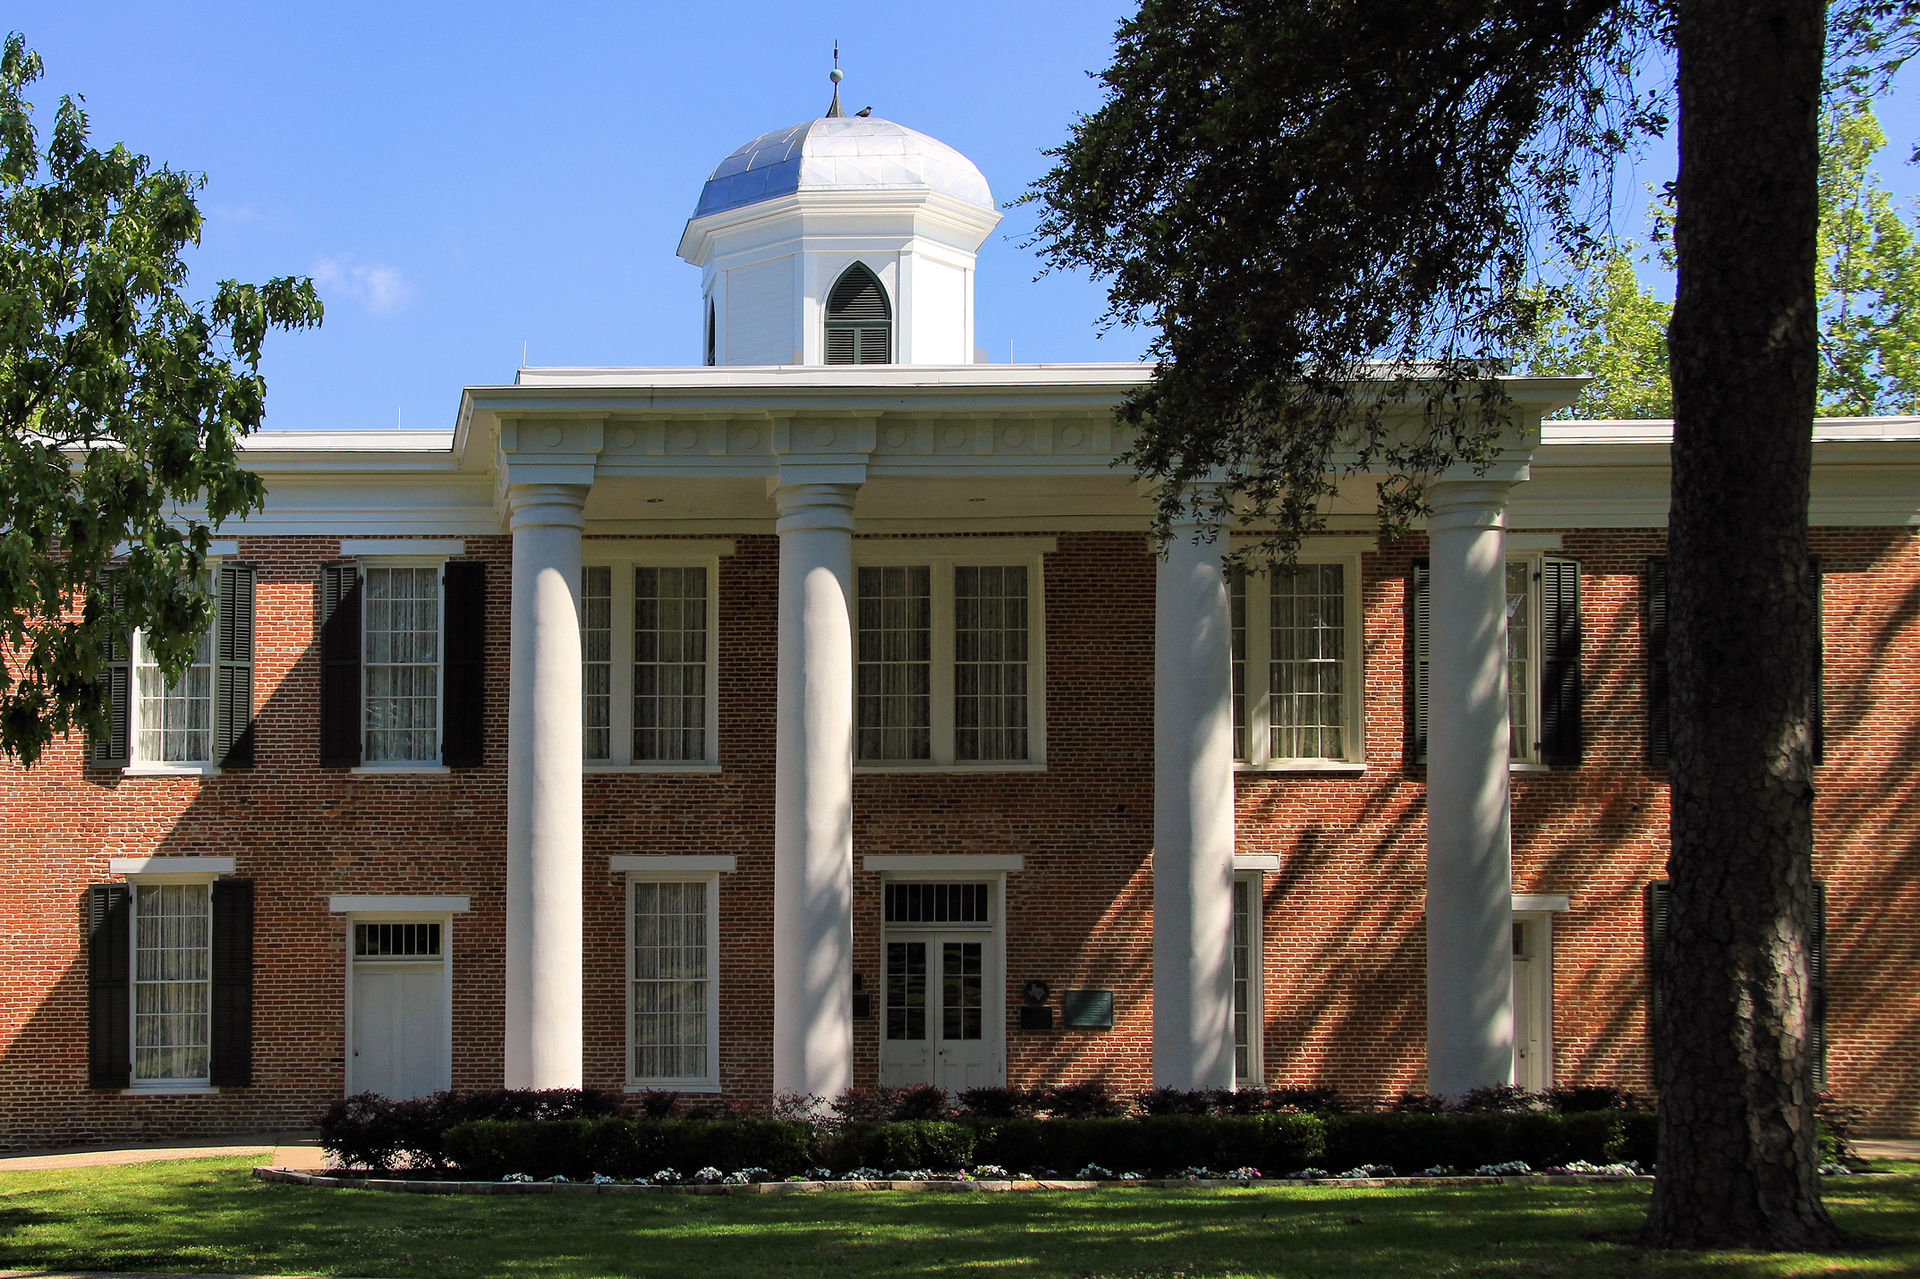 Austin Hall was built in 1852 and is the oldest continuously used educational building west of the Mississippi.